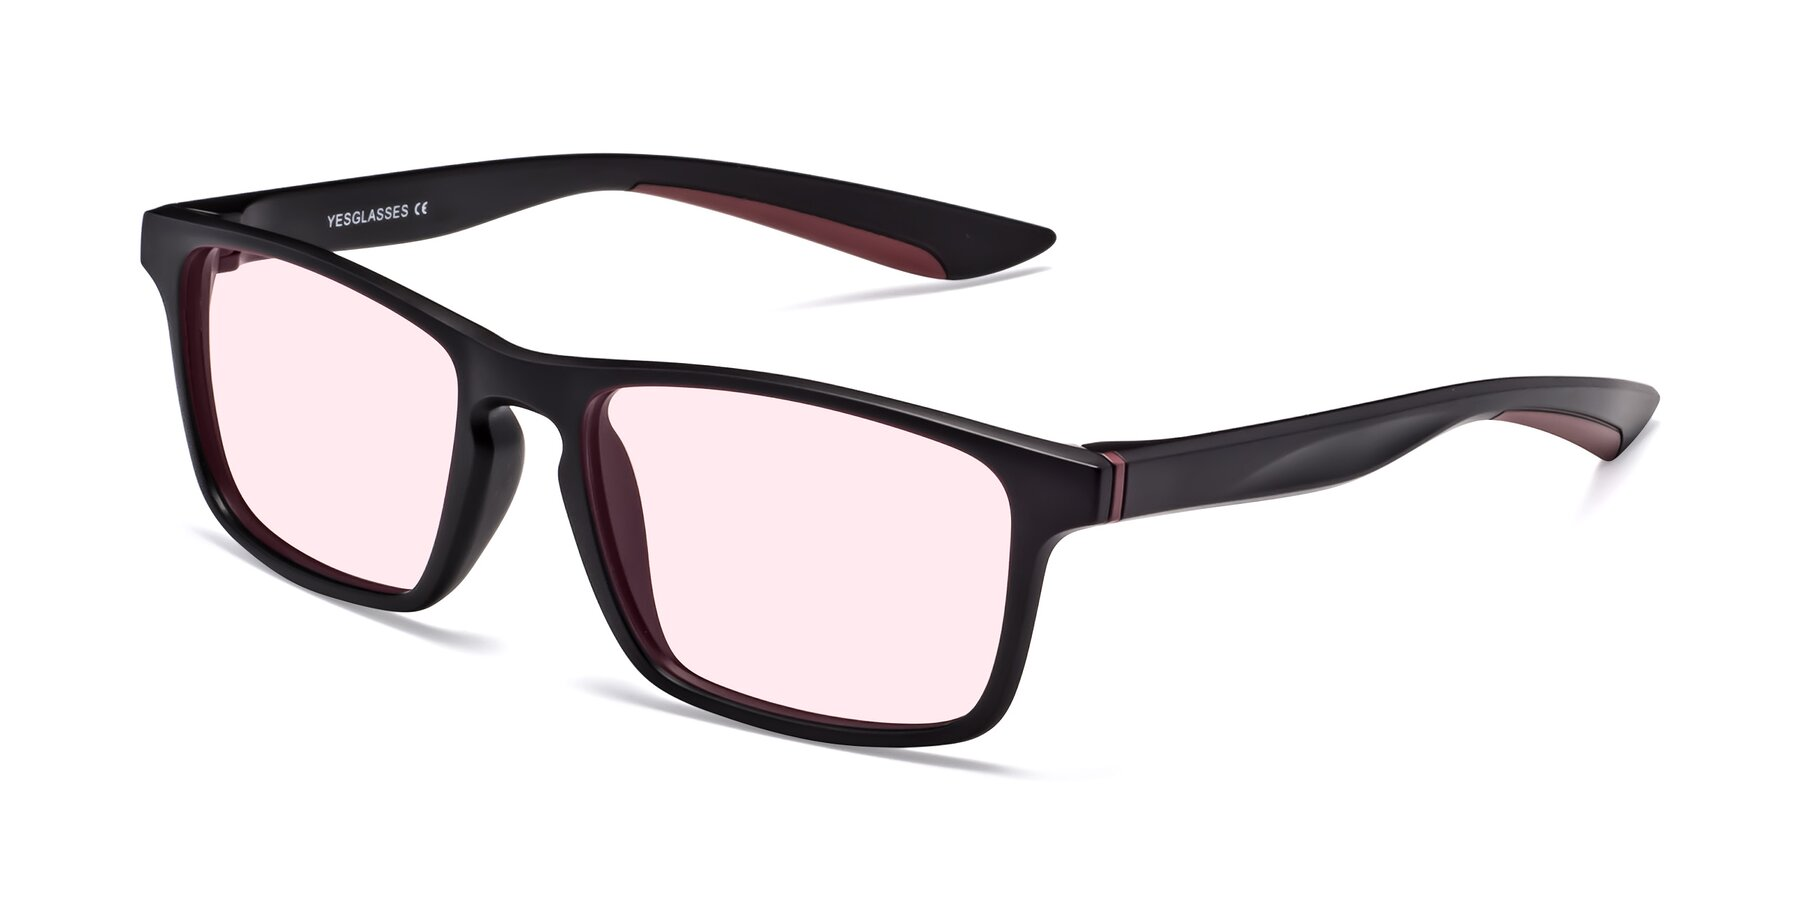 Angle of Passion in Matte Black-Wine with Light Pink Tinted Lenses